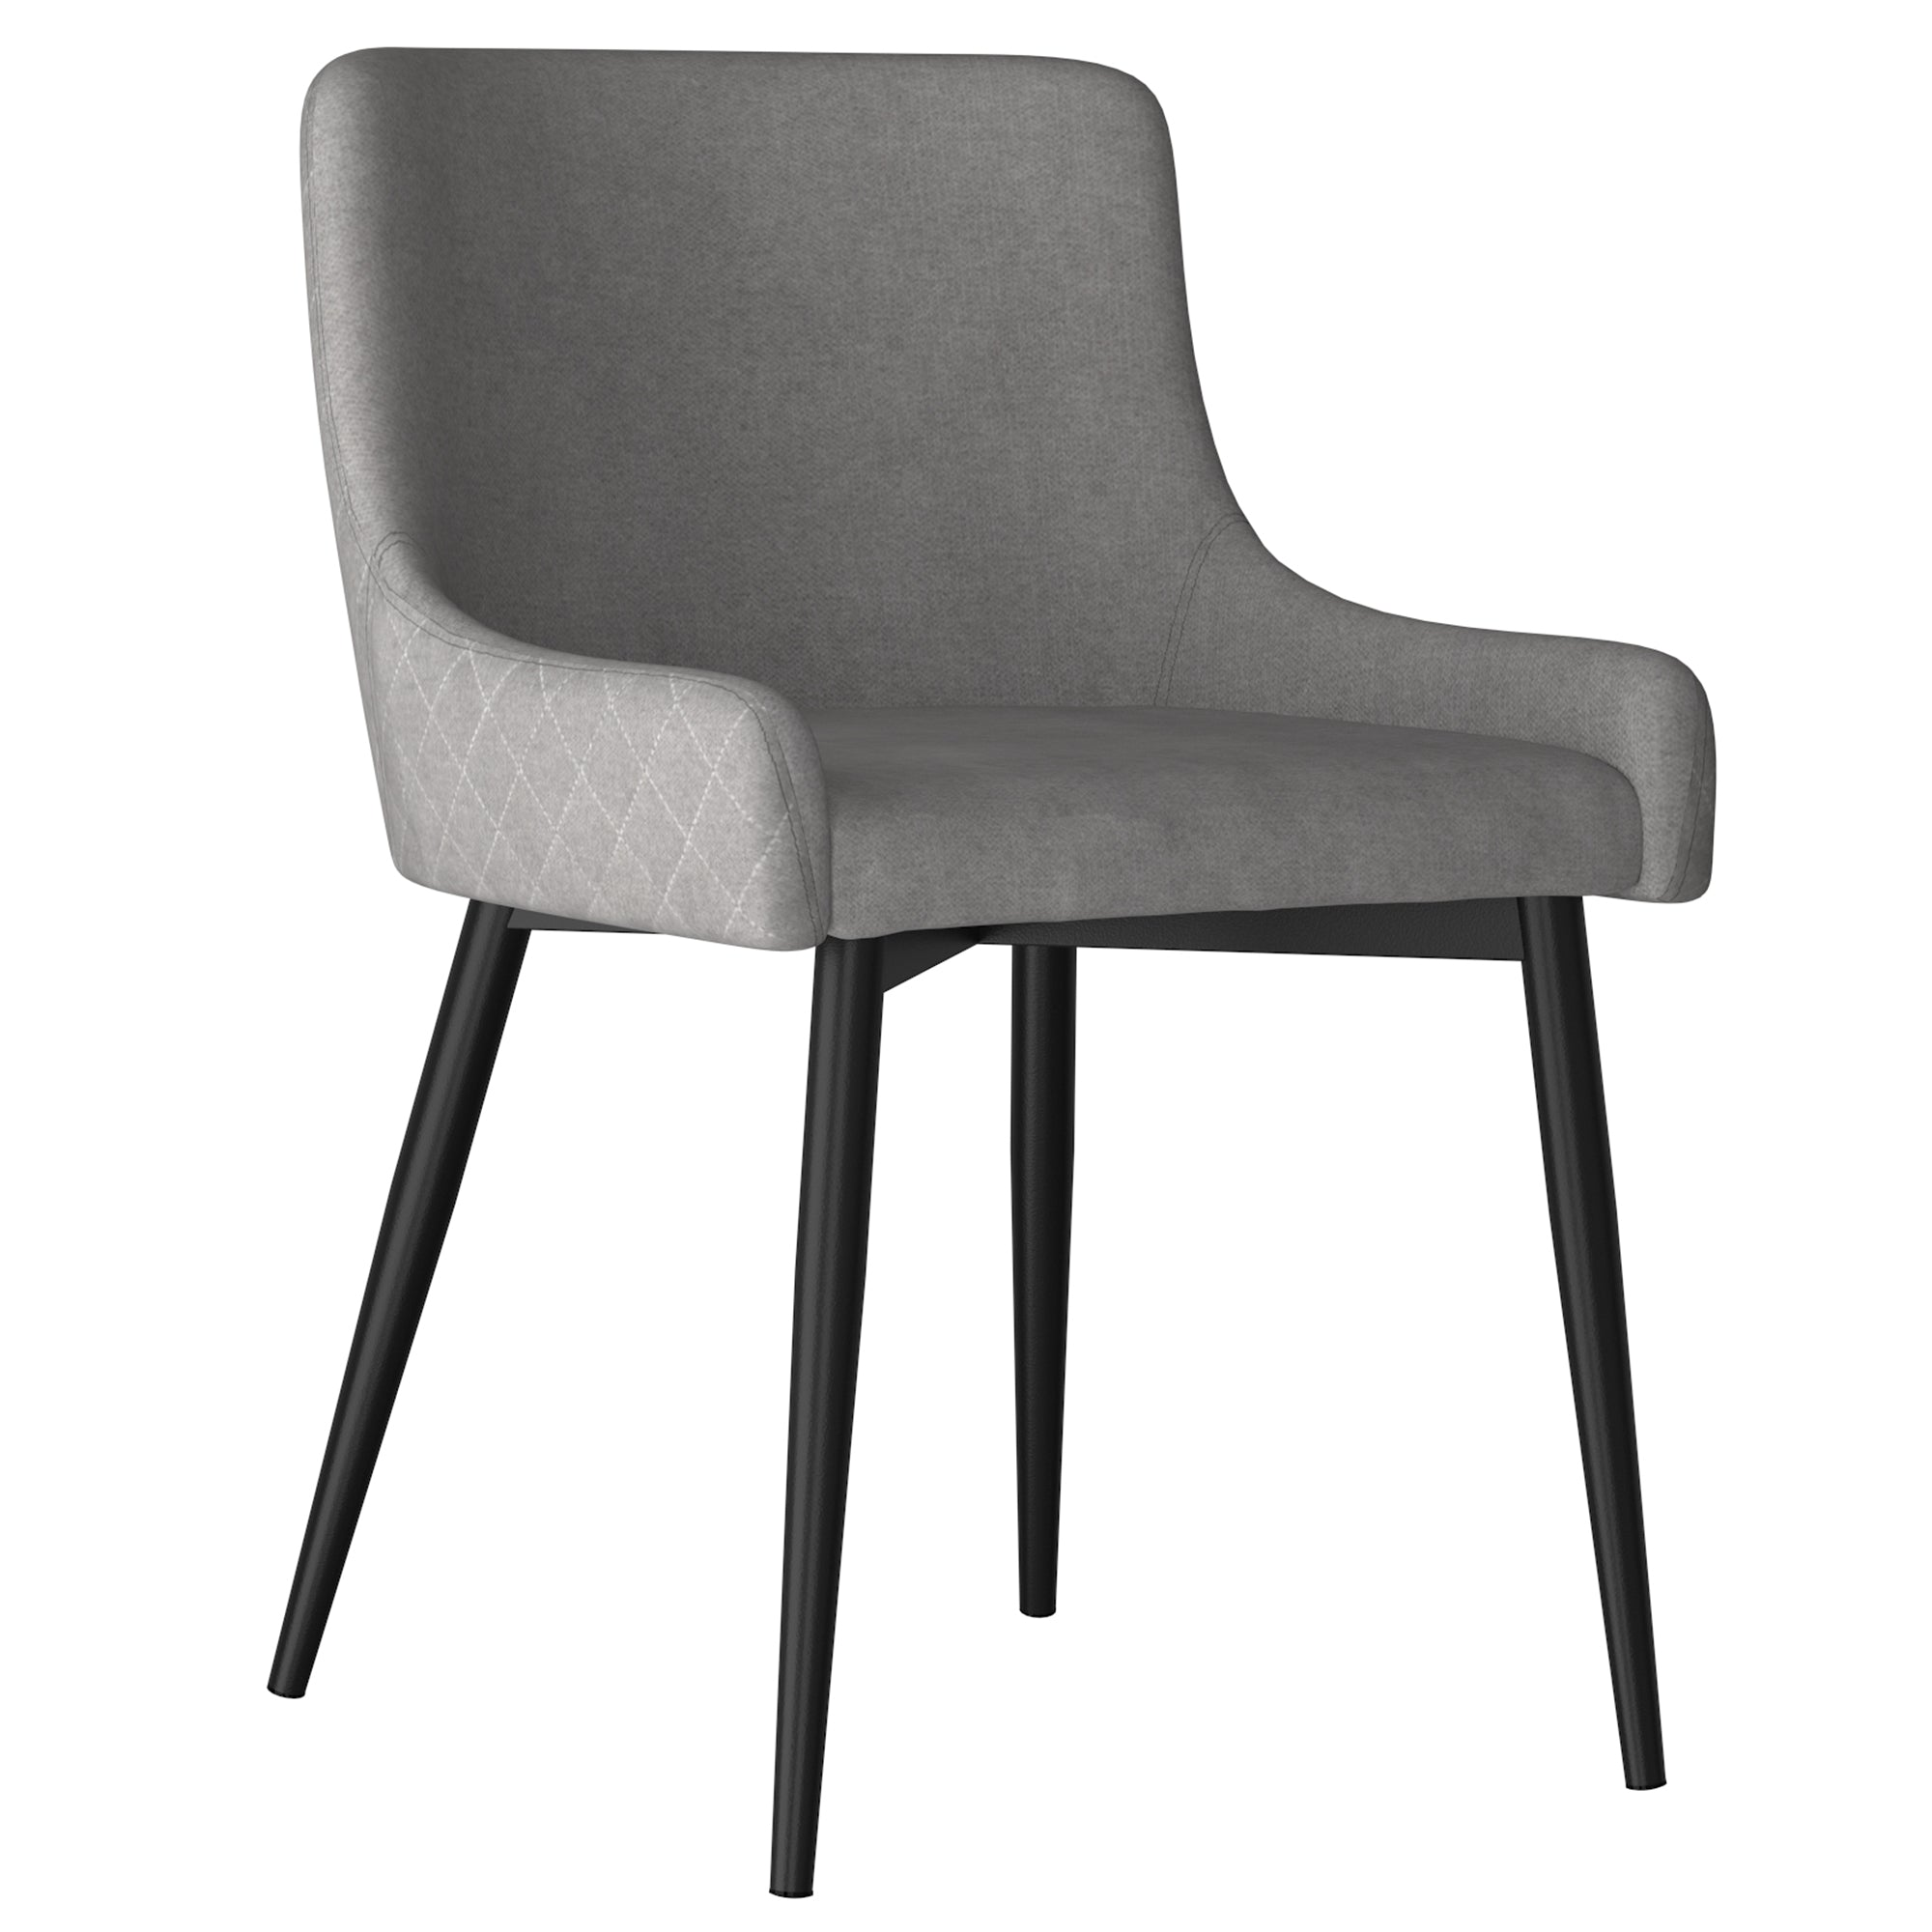 Bianca Side Chair - Grey with Black Legs